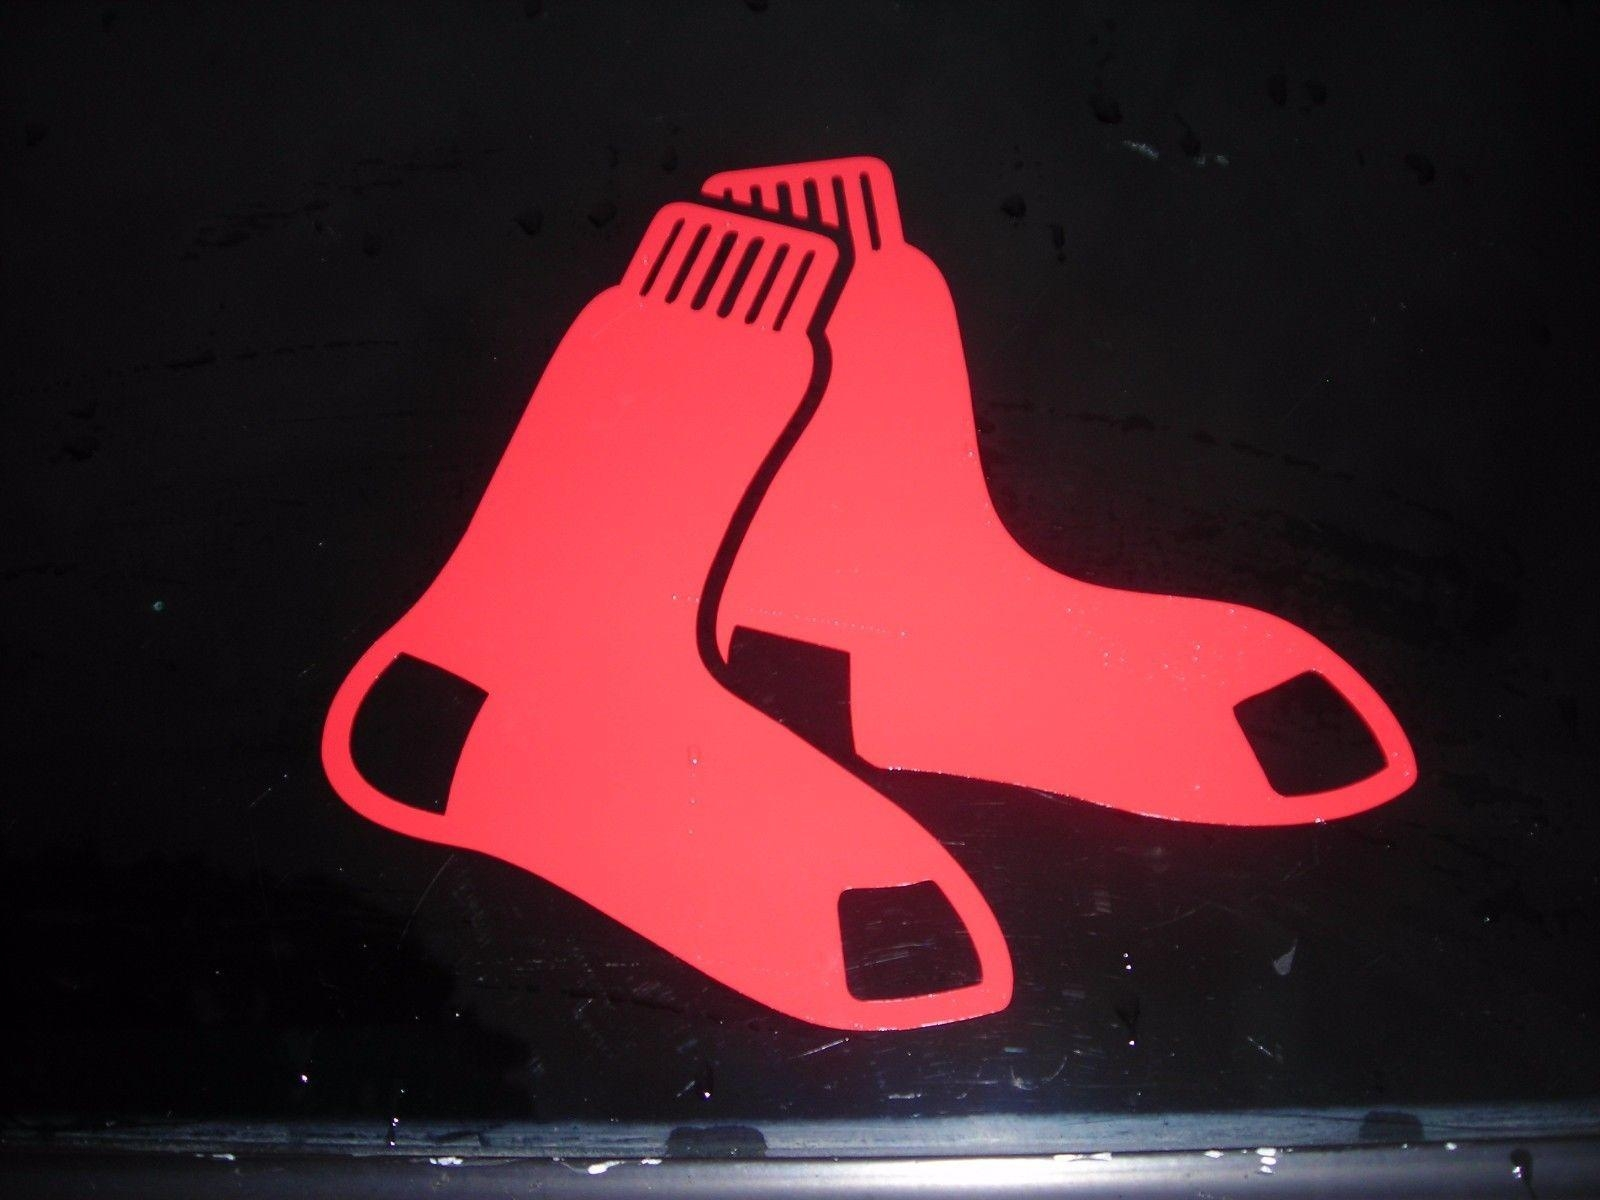 Wall Decals & Stickers , Home Decor , Home, Furniture & Diy in Red Sox Wall Decals